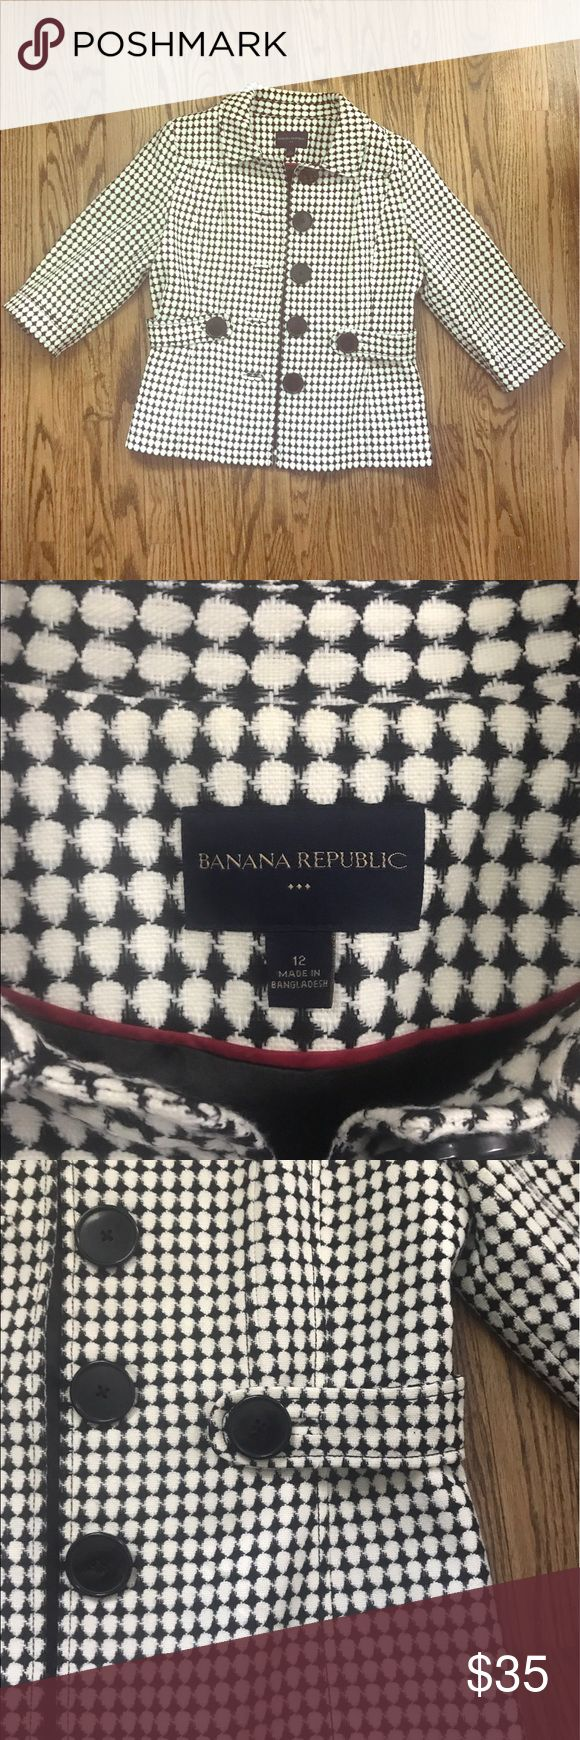 Banana Republic 3/4 sleeve blazer This Banana Republic blazer is perfect for spring or summer with its 3/4 sleeves. The large black buttons and black/ivory print give it a mod retro feel. Banana Republic Jackets & Coats Blazers